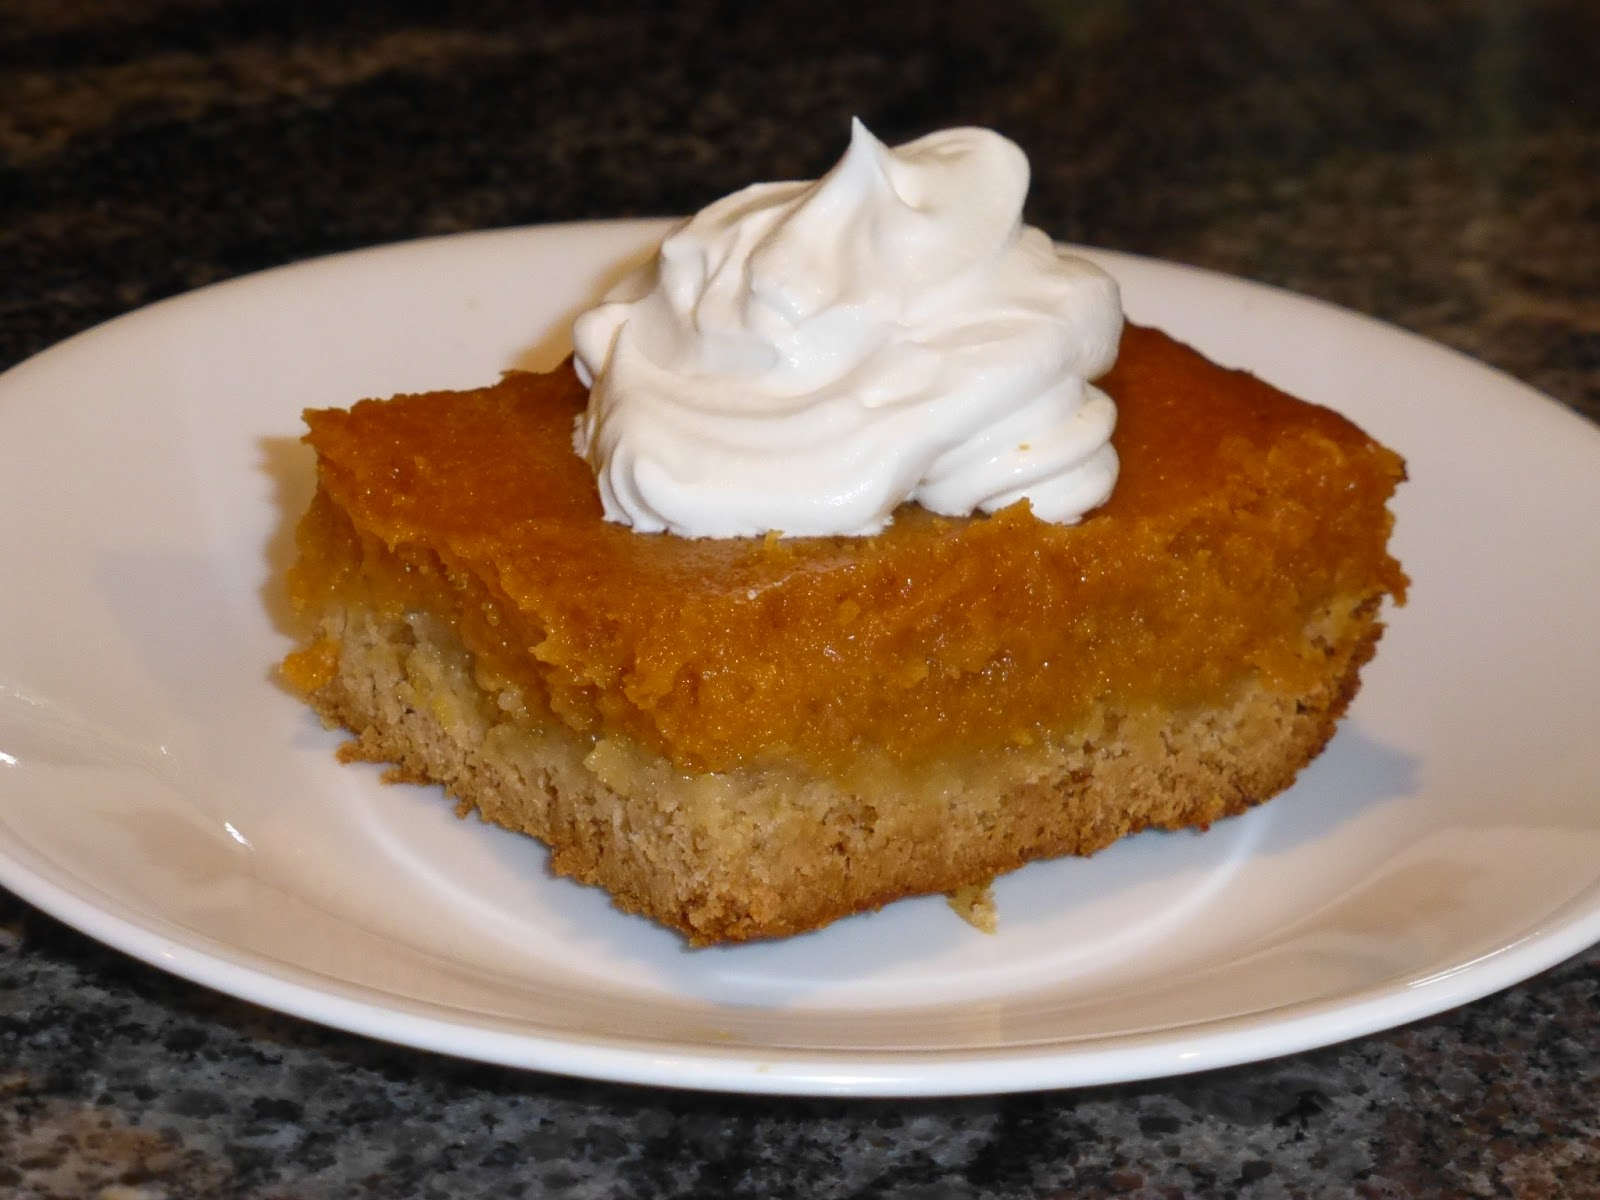 Theresa's Mixed Nuts: Gooey Pumpkin Butter Cake